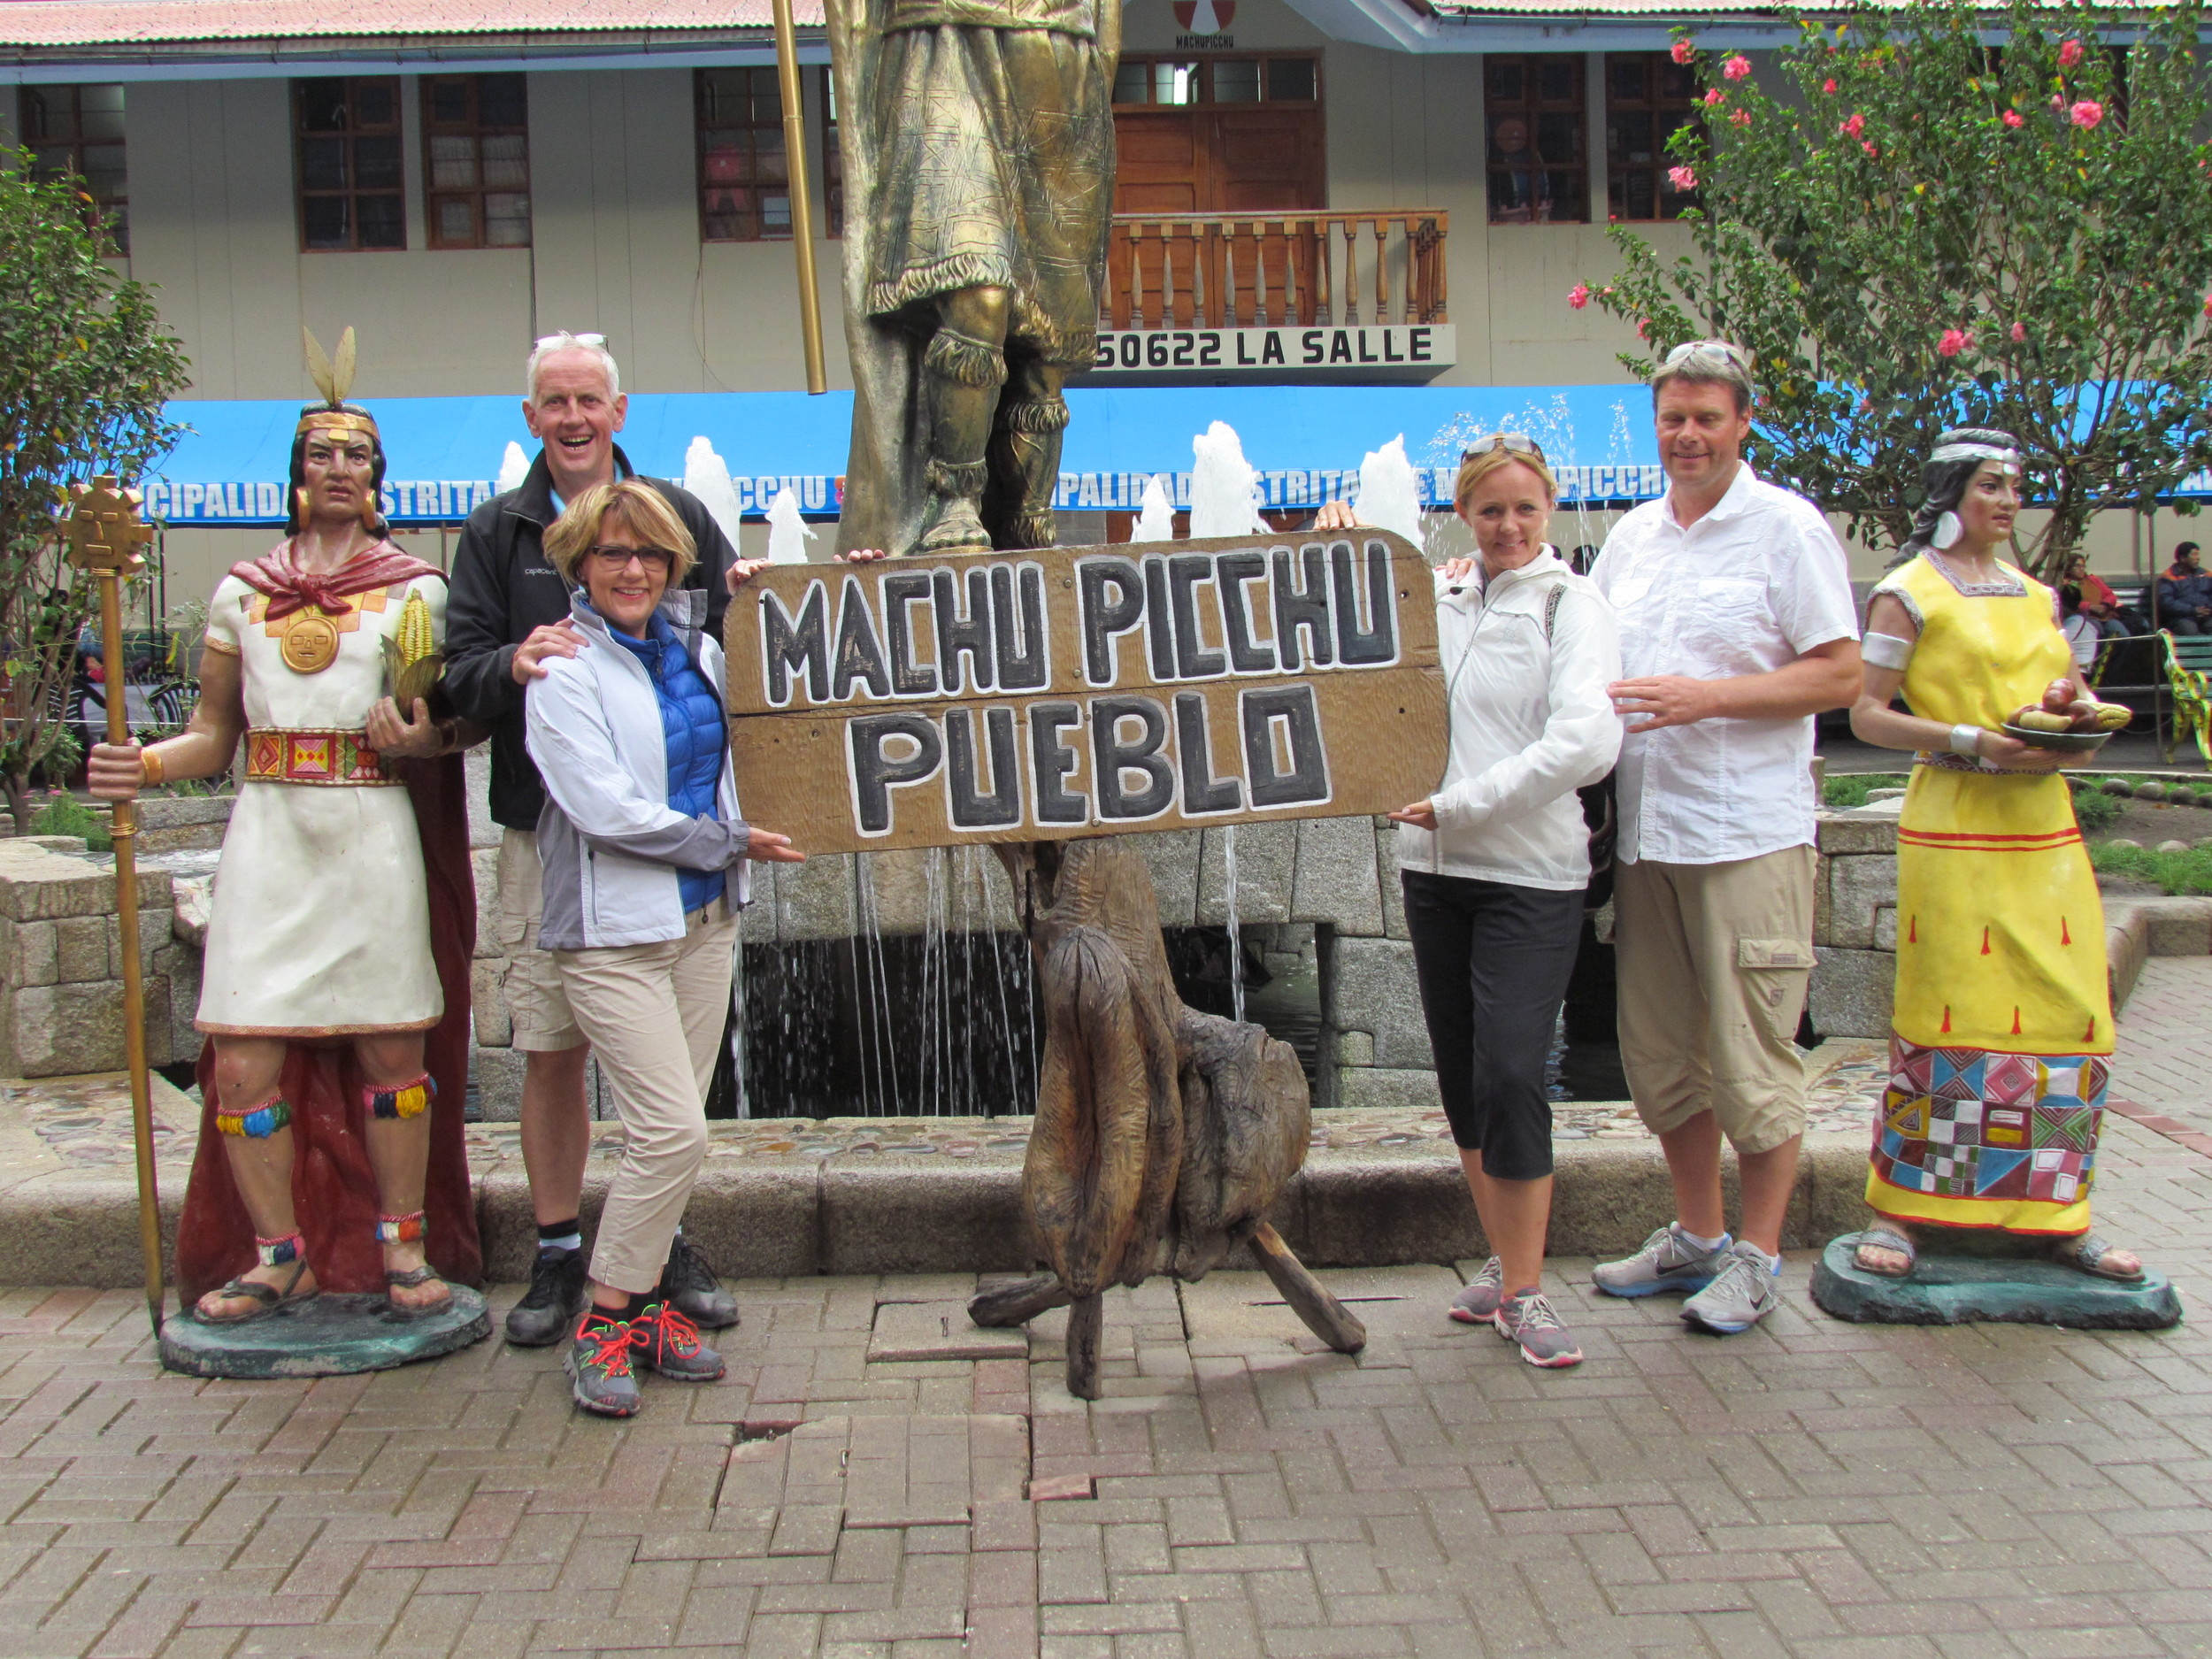 Back down from Machu Picchu in the village called Aquas Caliente but apparently also Machu Picchu pueblo